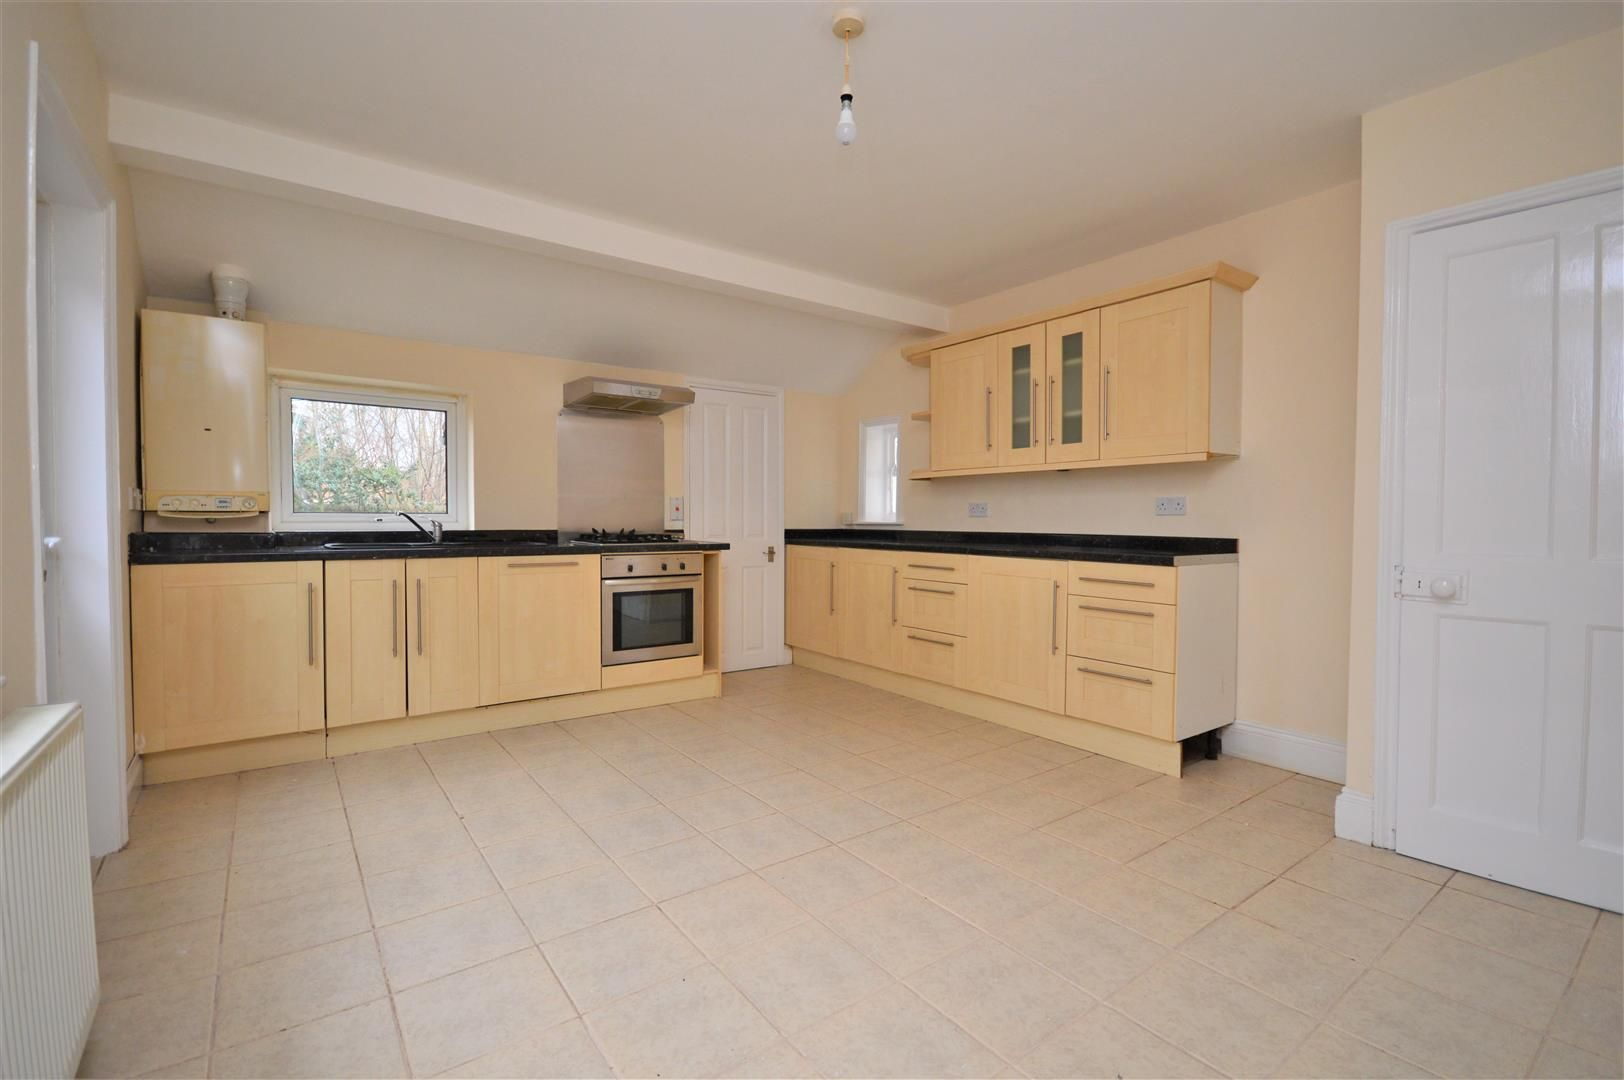 3 bed detached-bungalow for sale in Hereford  - Property Image 2